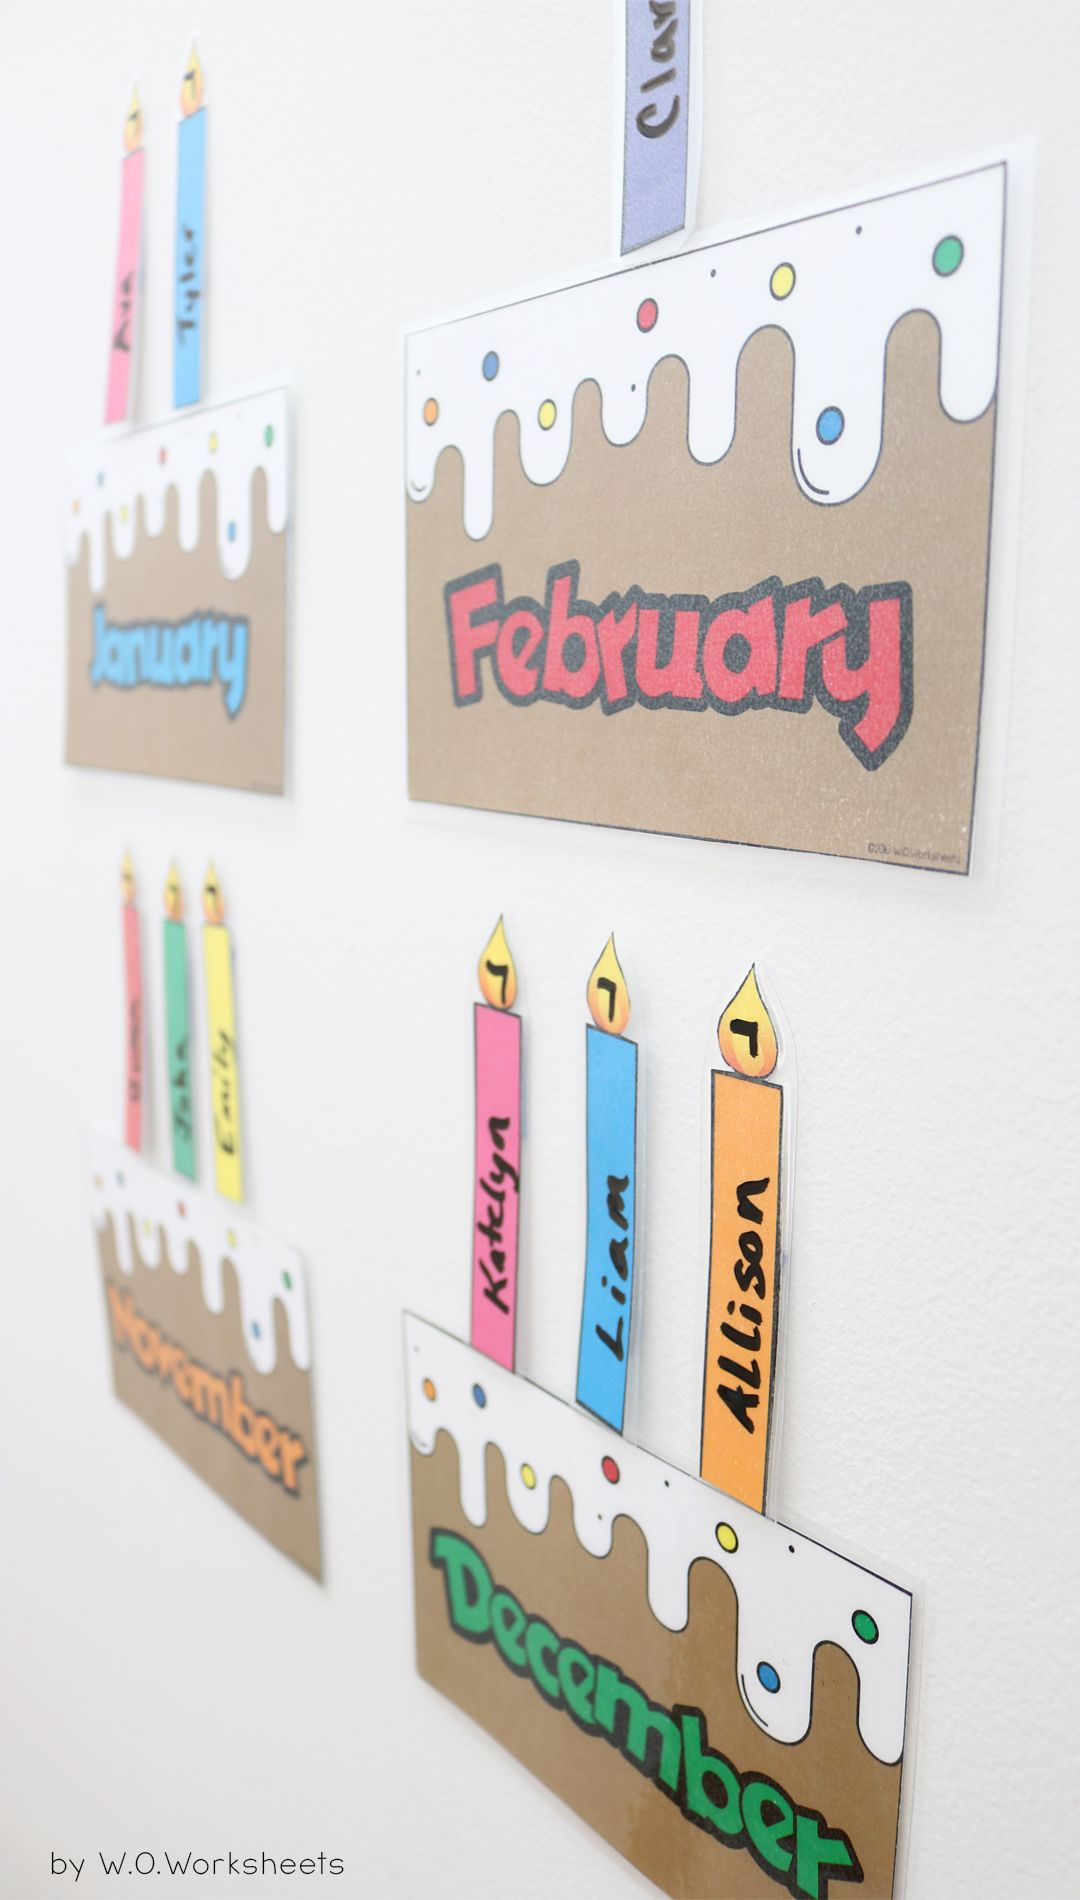 Printable Classroom Birthday Chart Laminate And Use A Dry Erase Marker To Write The Names Of Each Student On Candles Place Cake